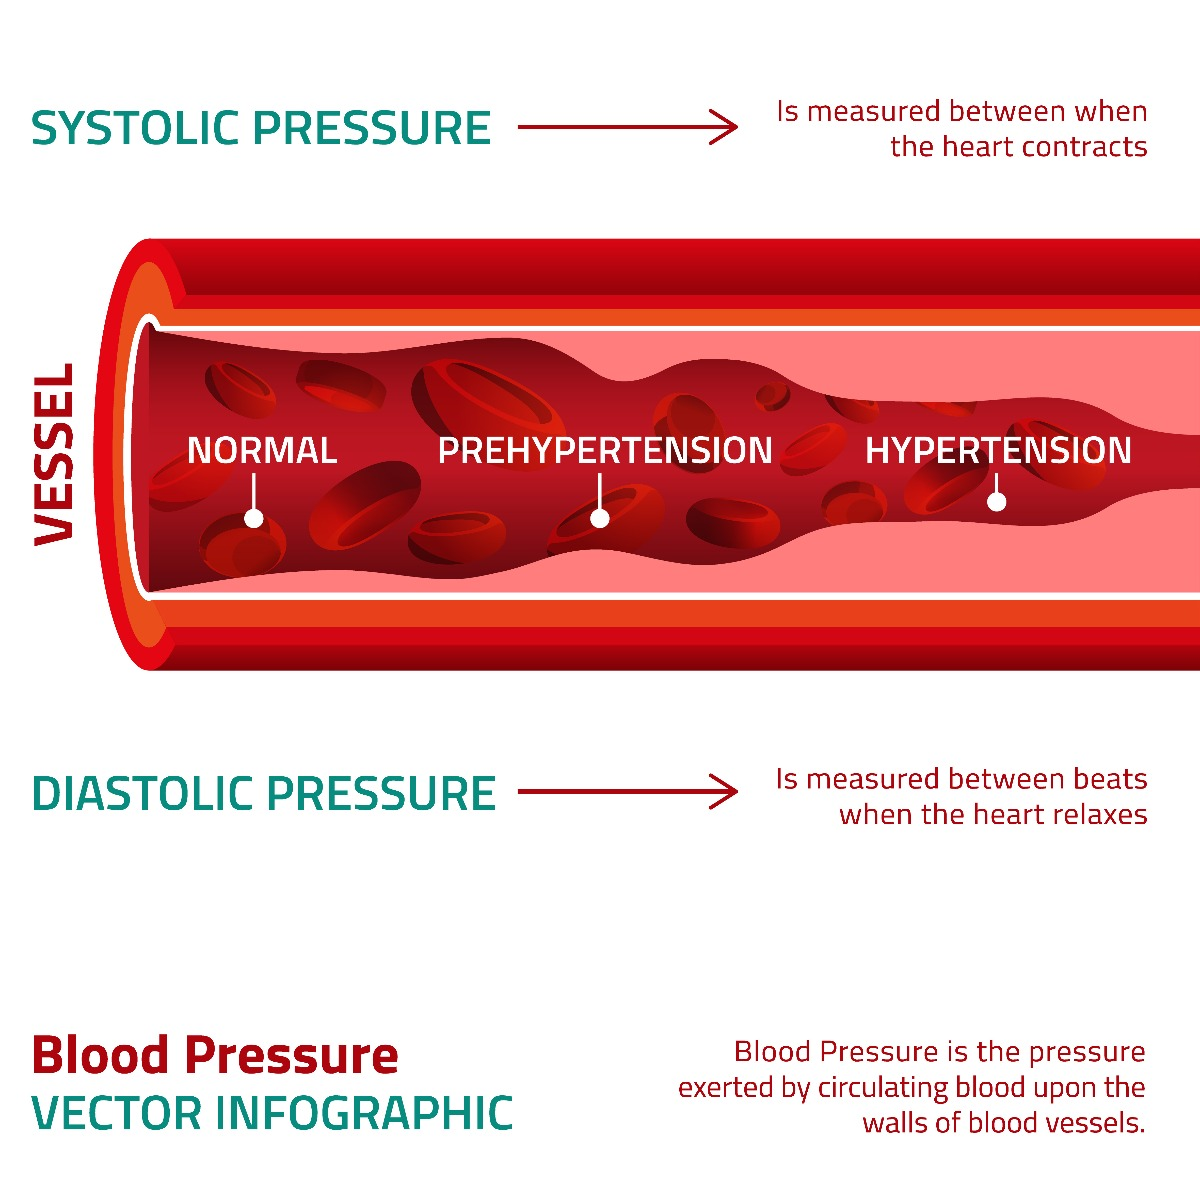 Infographic explaining the differences between systolic pressure and diastolic pressure